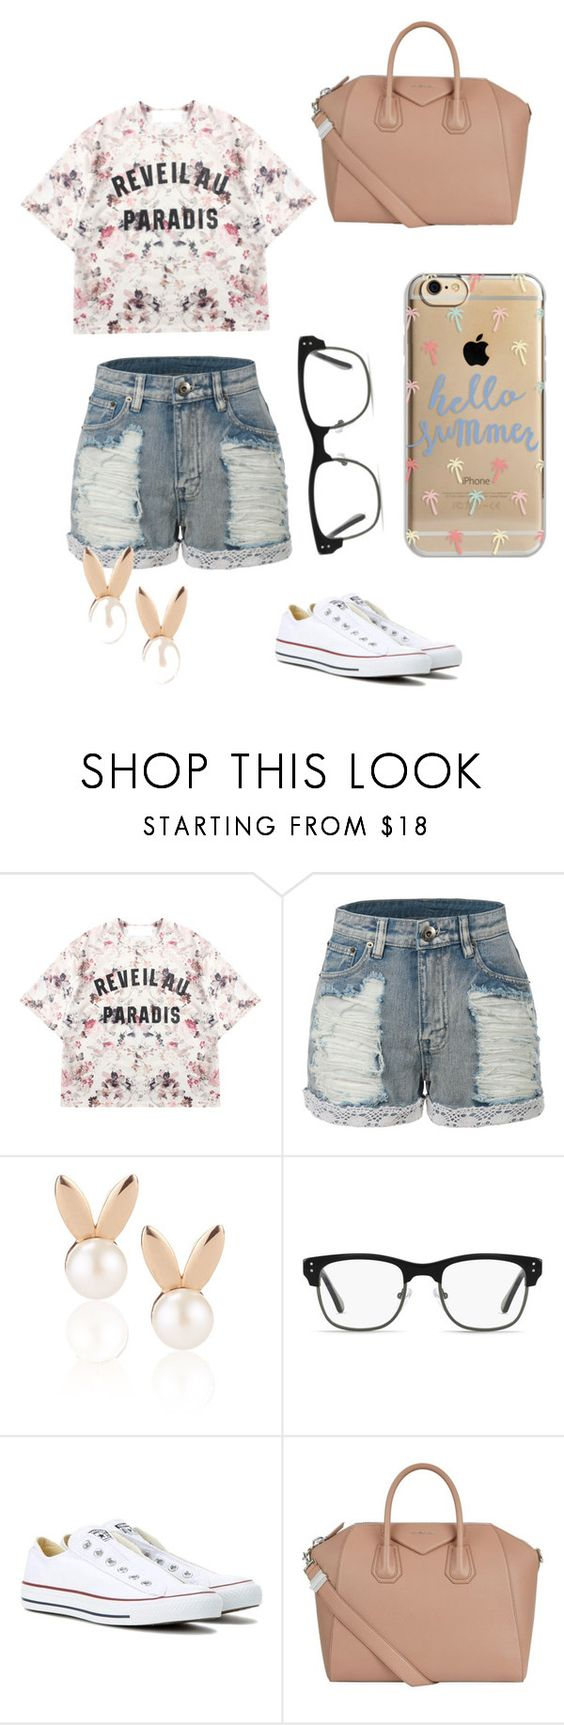 """Summer Days"" by divergent-dino on Polyvore featuring Momewear, LE3NO, Aamaya by priyanka, GlassesUSA, Converse, Givenchy, Agent 18, Summer, summerstyle and summer2016"